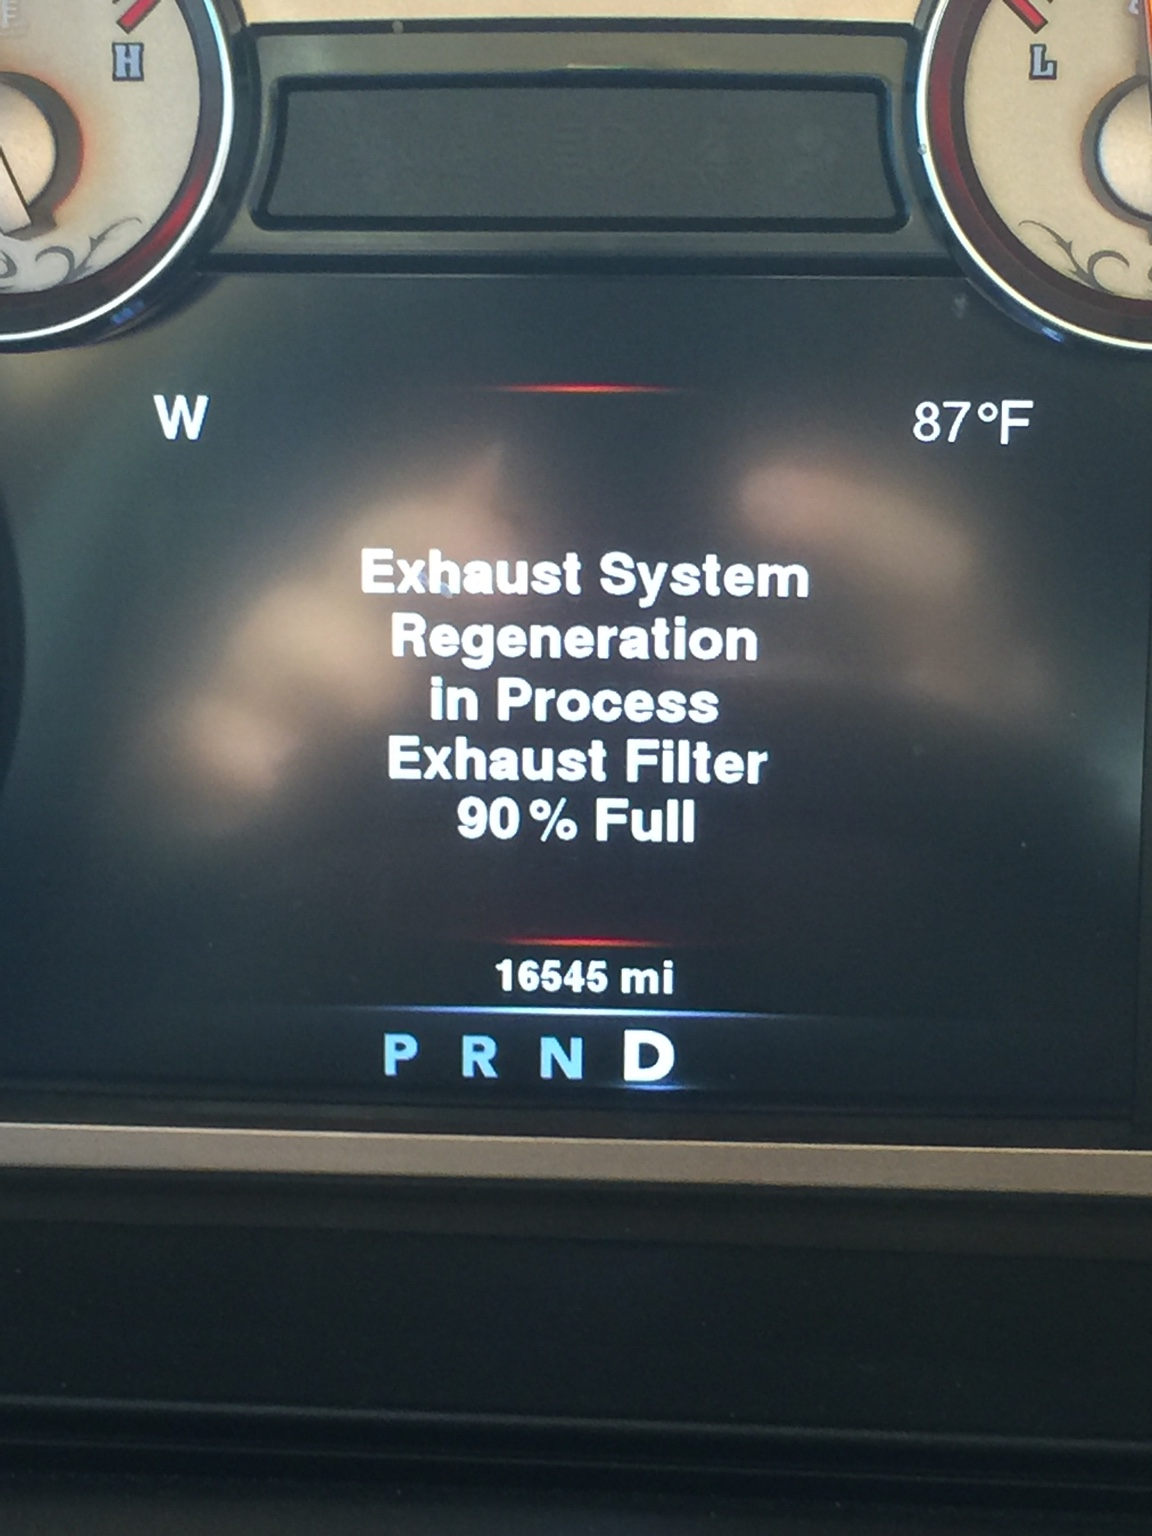 Exhaust System Regeneration  What is it doing and what does it mean?